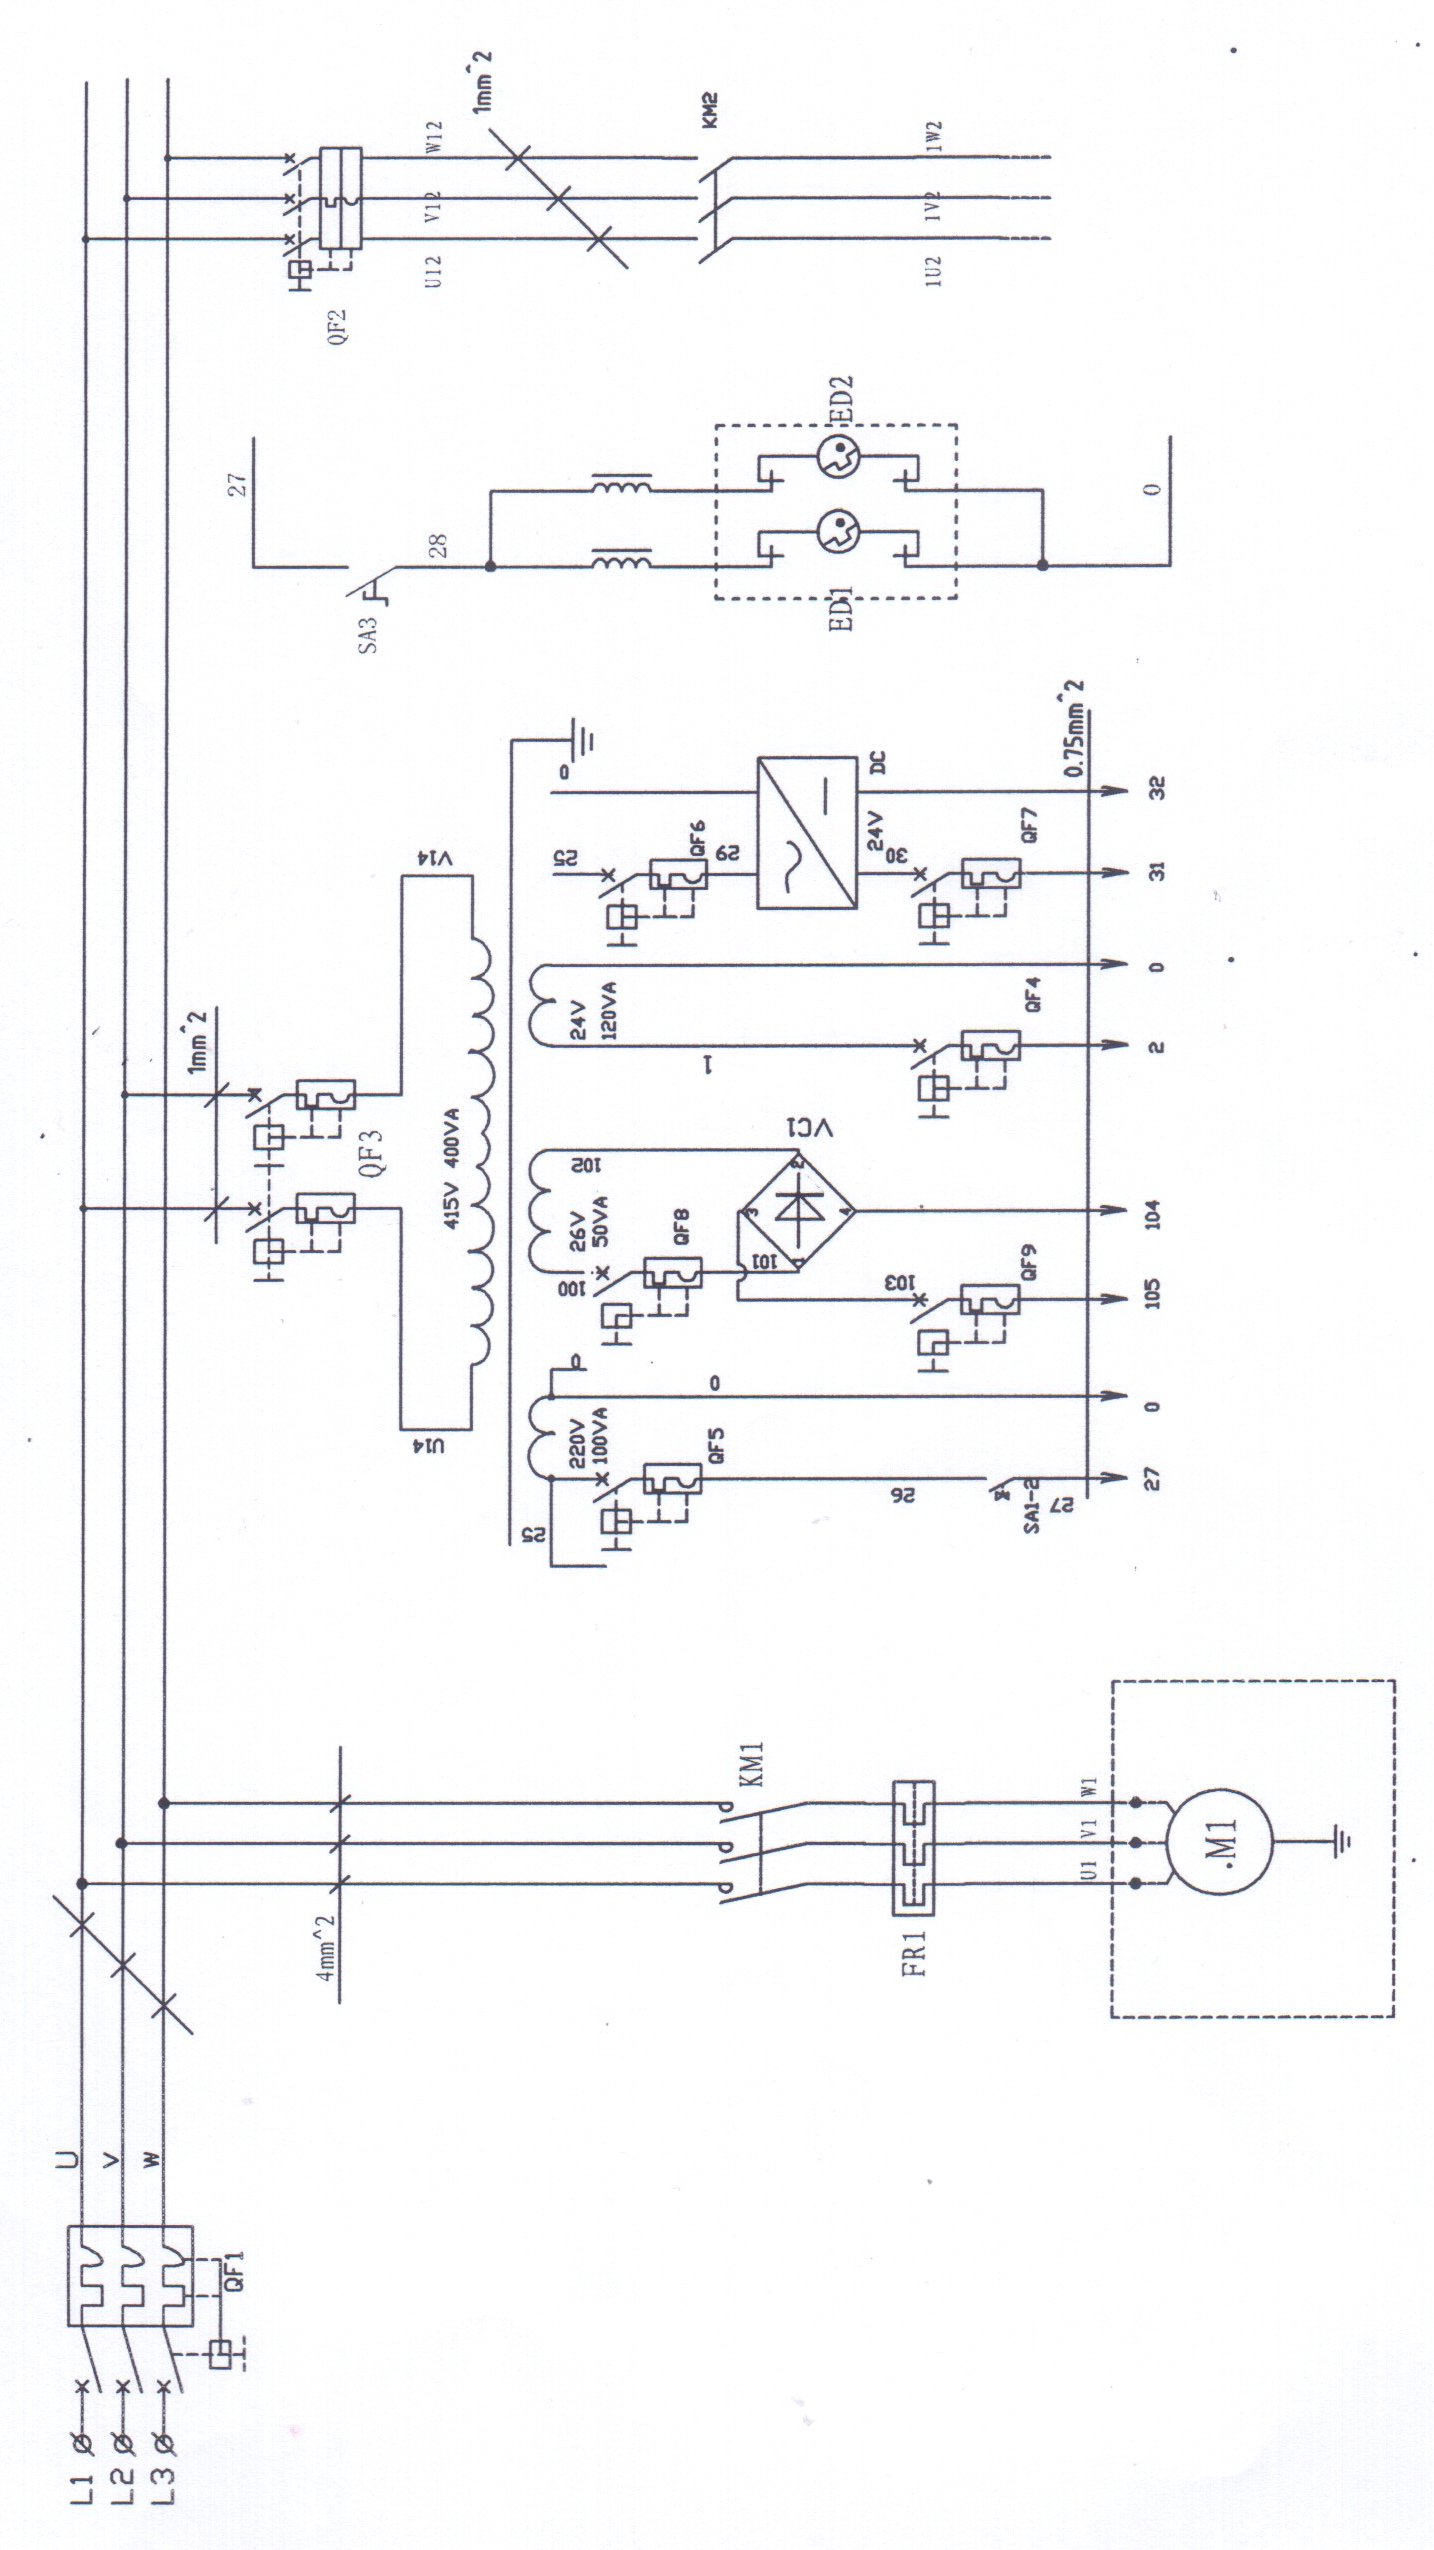 hight resolution of hydraulic shears circuit diagram